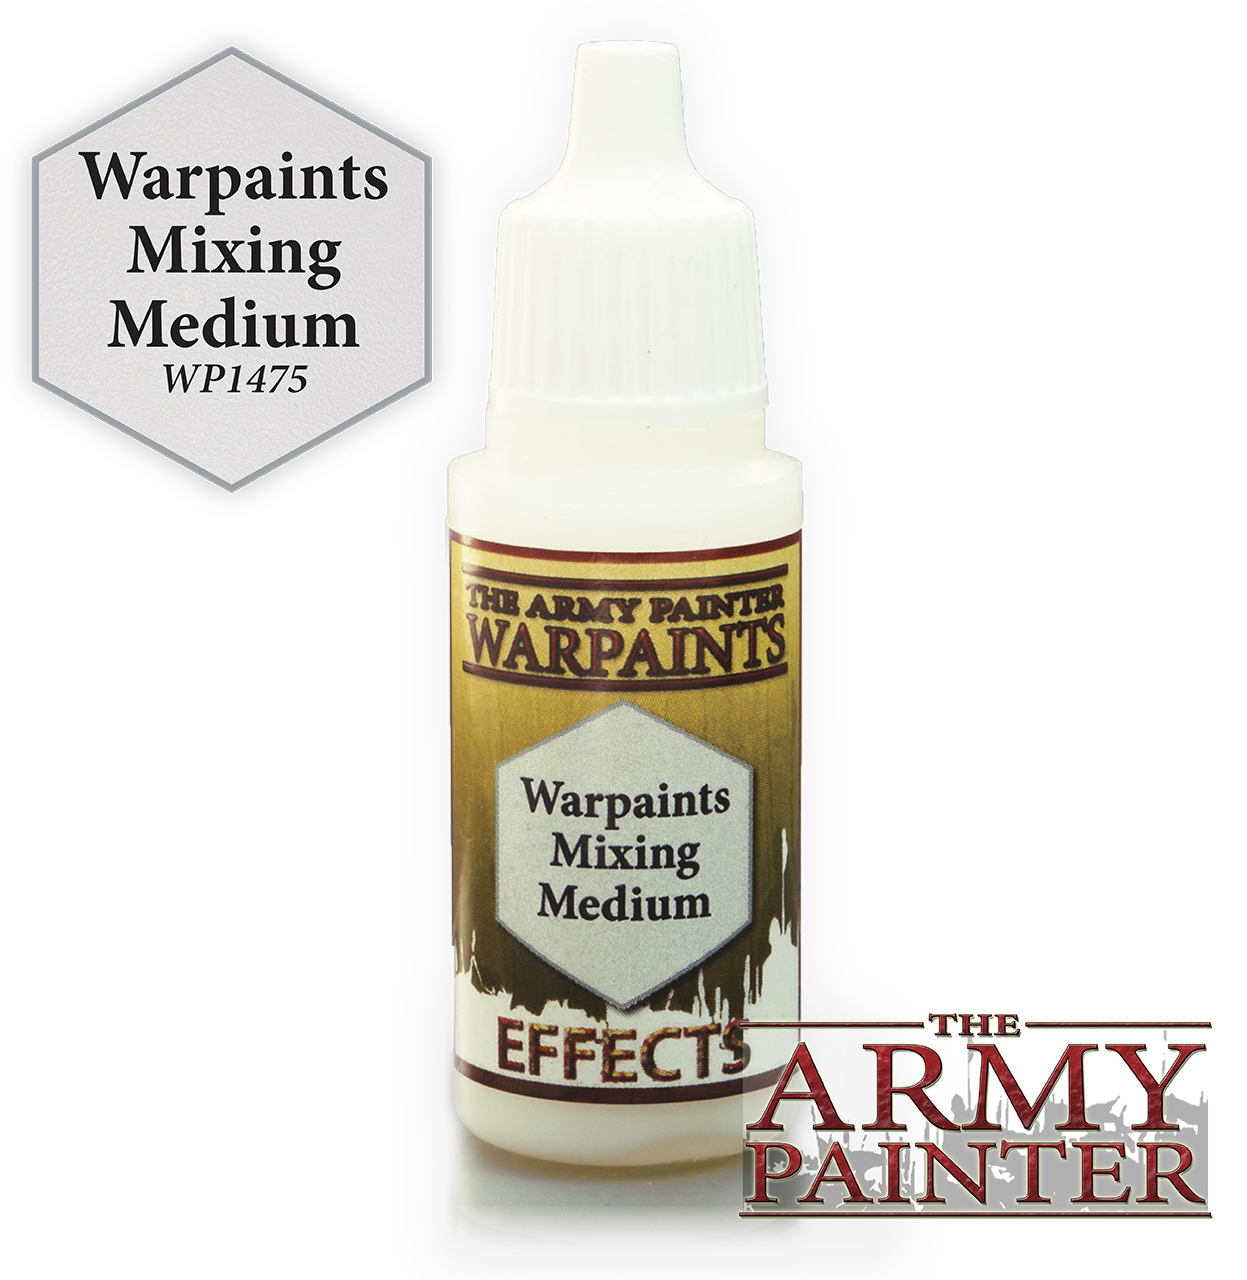 Warpaints Mixing Medium image